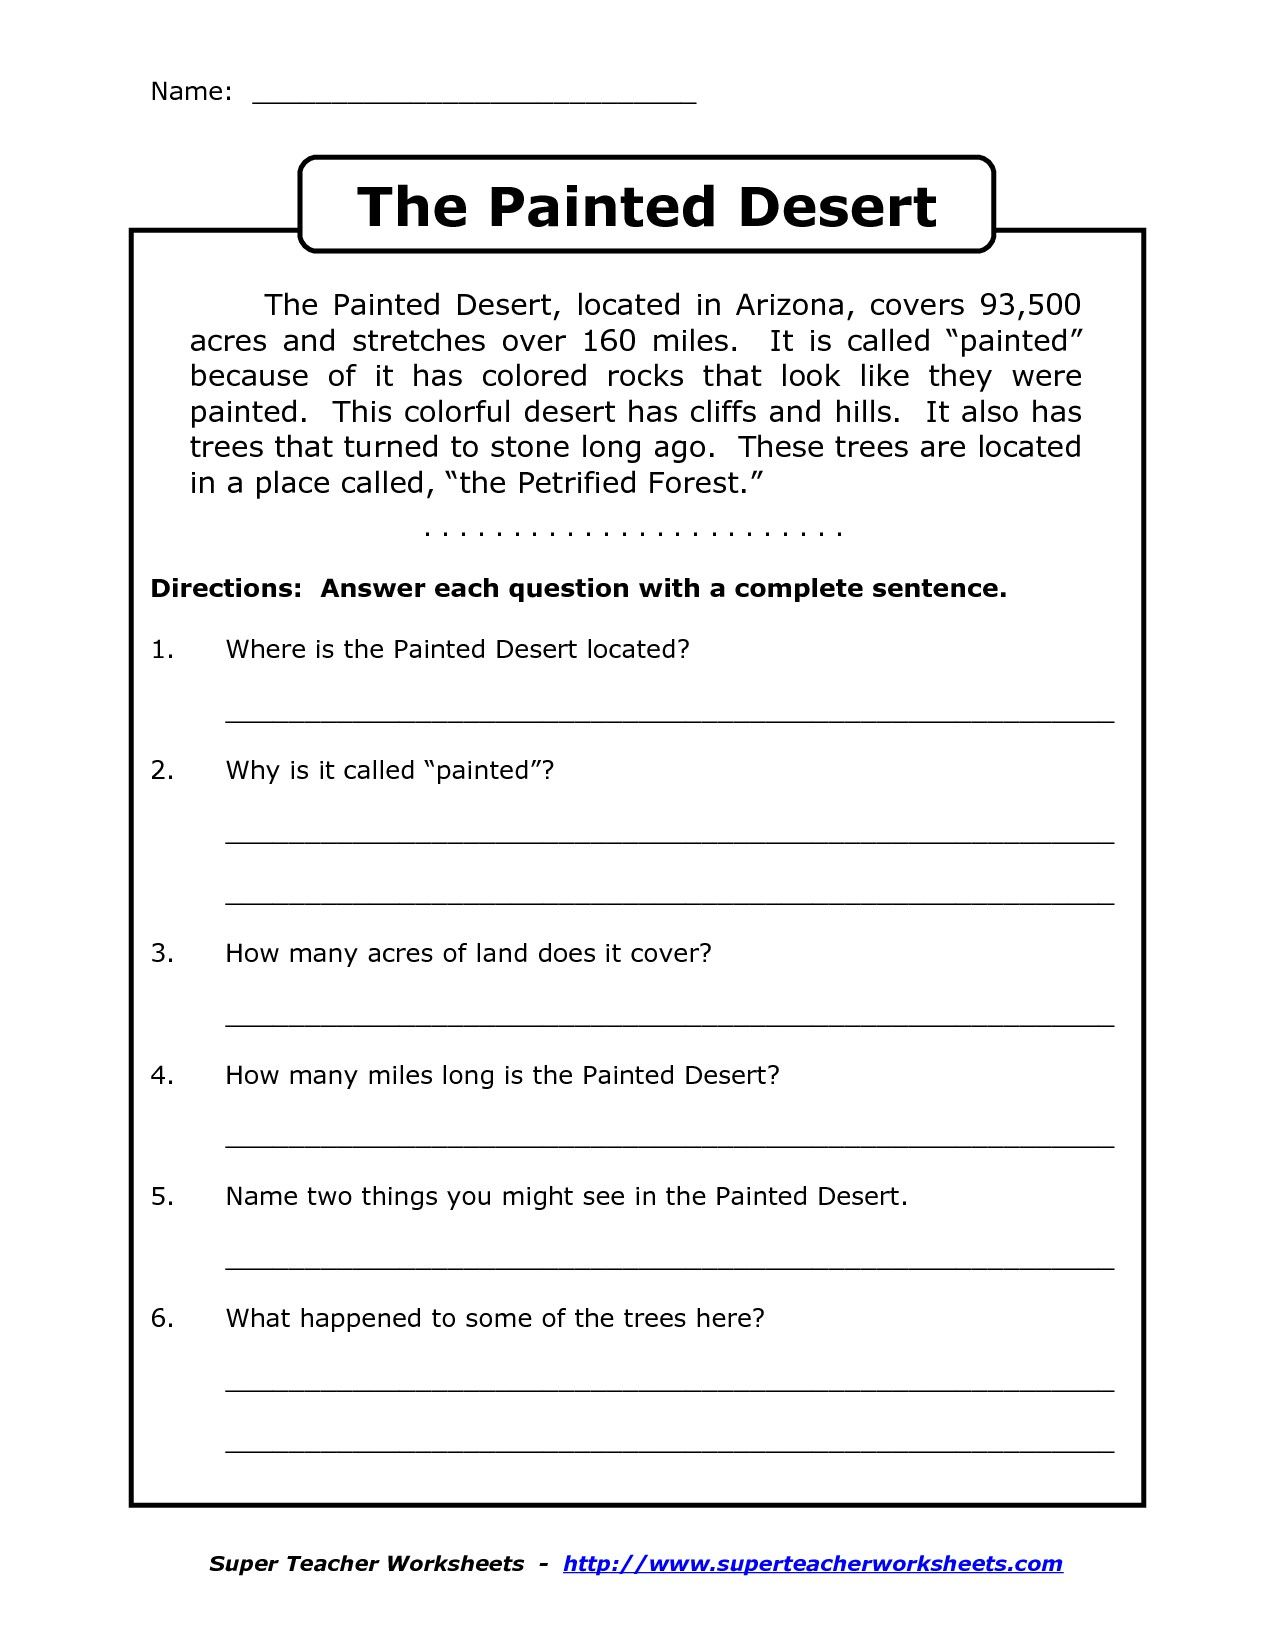 Free Worksheet Free Printable Reading Worksheets For 3rd Grade reading comprehension lessons tes teach worksheets hd photos gallery